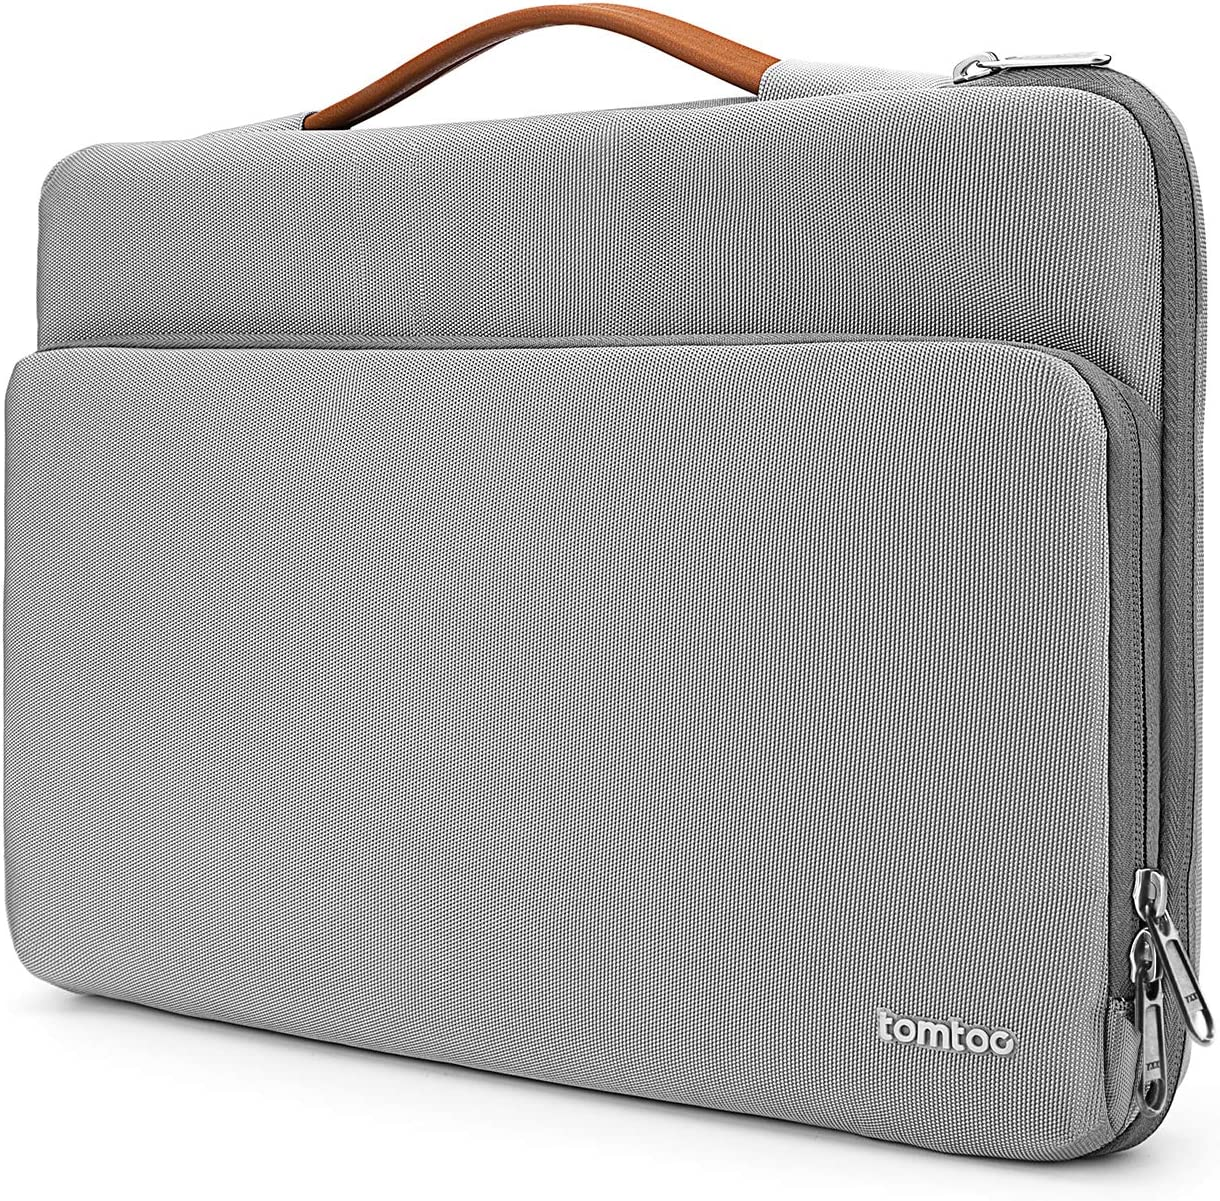 tomtoc Laptop Sleeve for 16-inch MacBook Pro, 15 inch Old MacBook Pro, Notebook Case for Dell XPS 15, Microsoft Surface Book 3/2, The New Razer Blade 15, ThinkPad X1 Extreme Gen 2, Accessory Bag